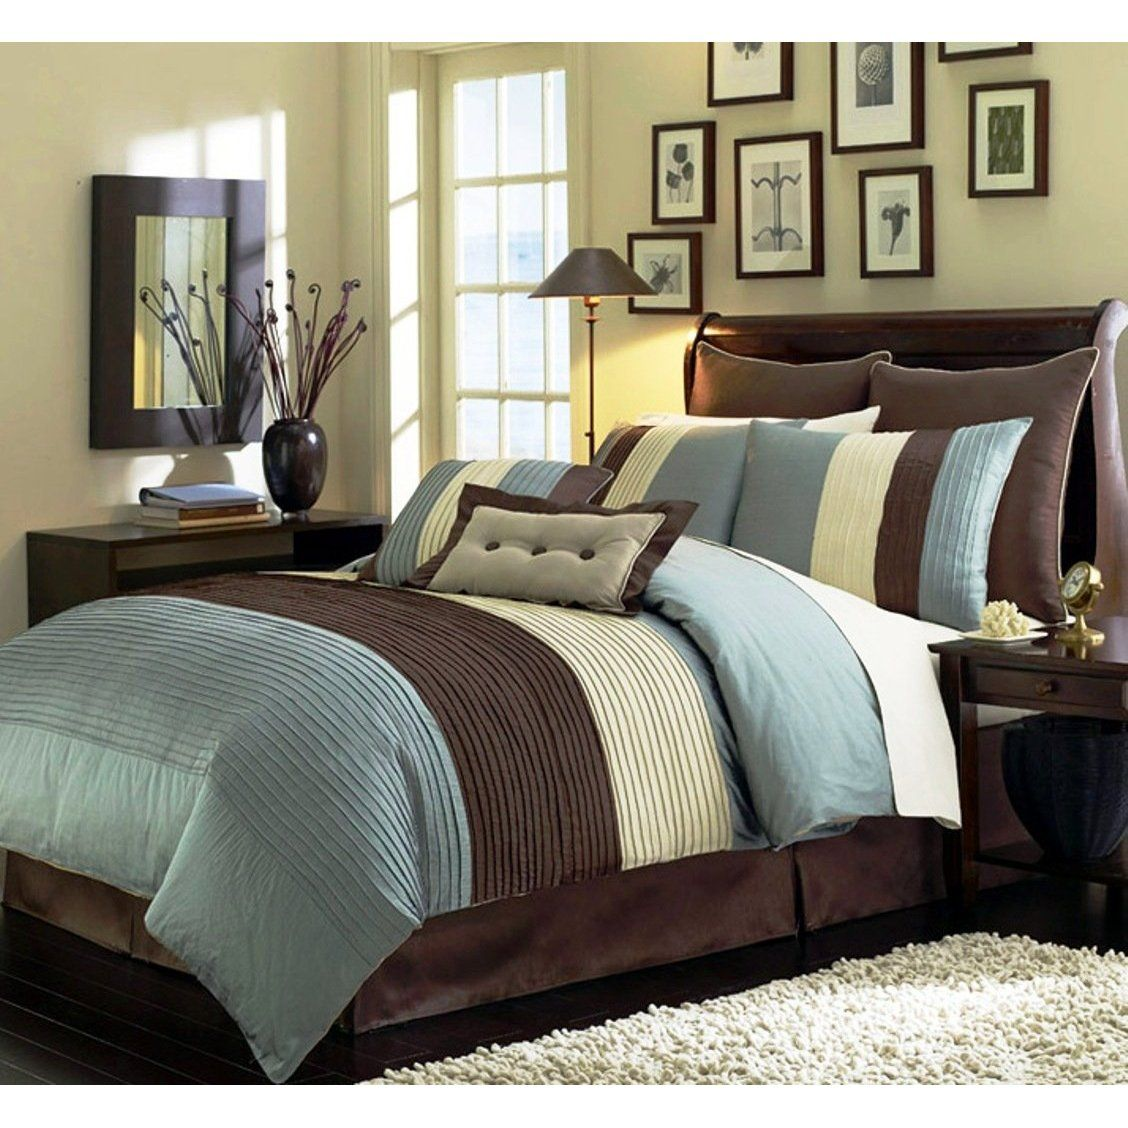 Chocolate Brown and Blue Bedding Sets | Brown comforter, Brown and ...